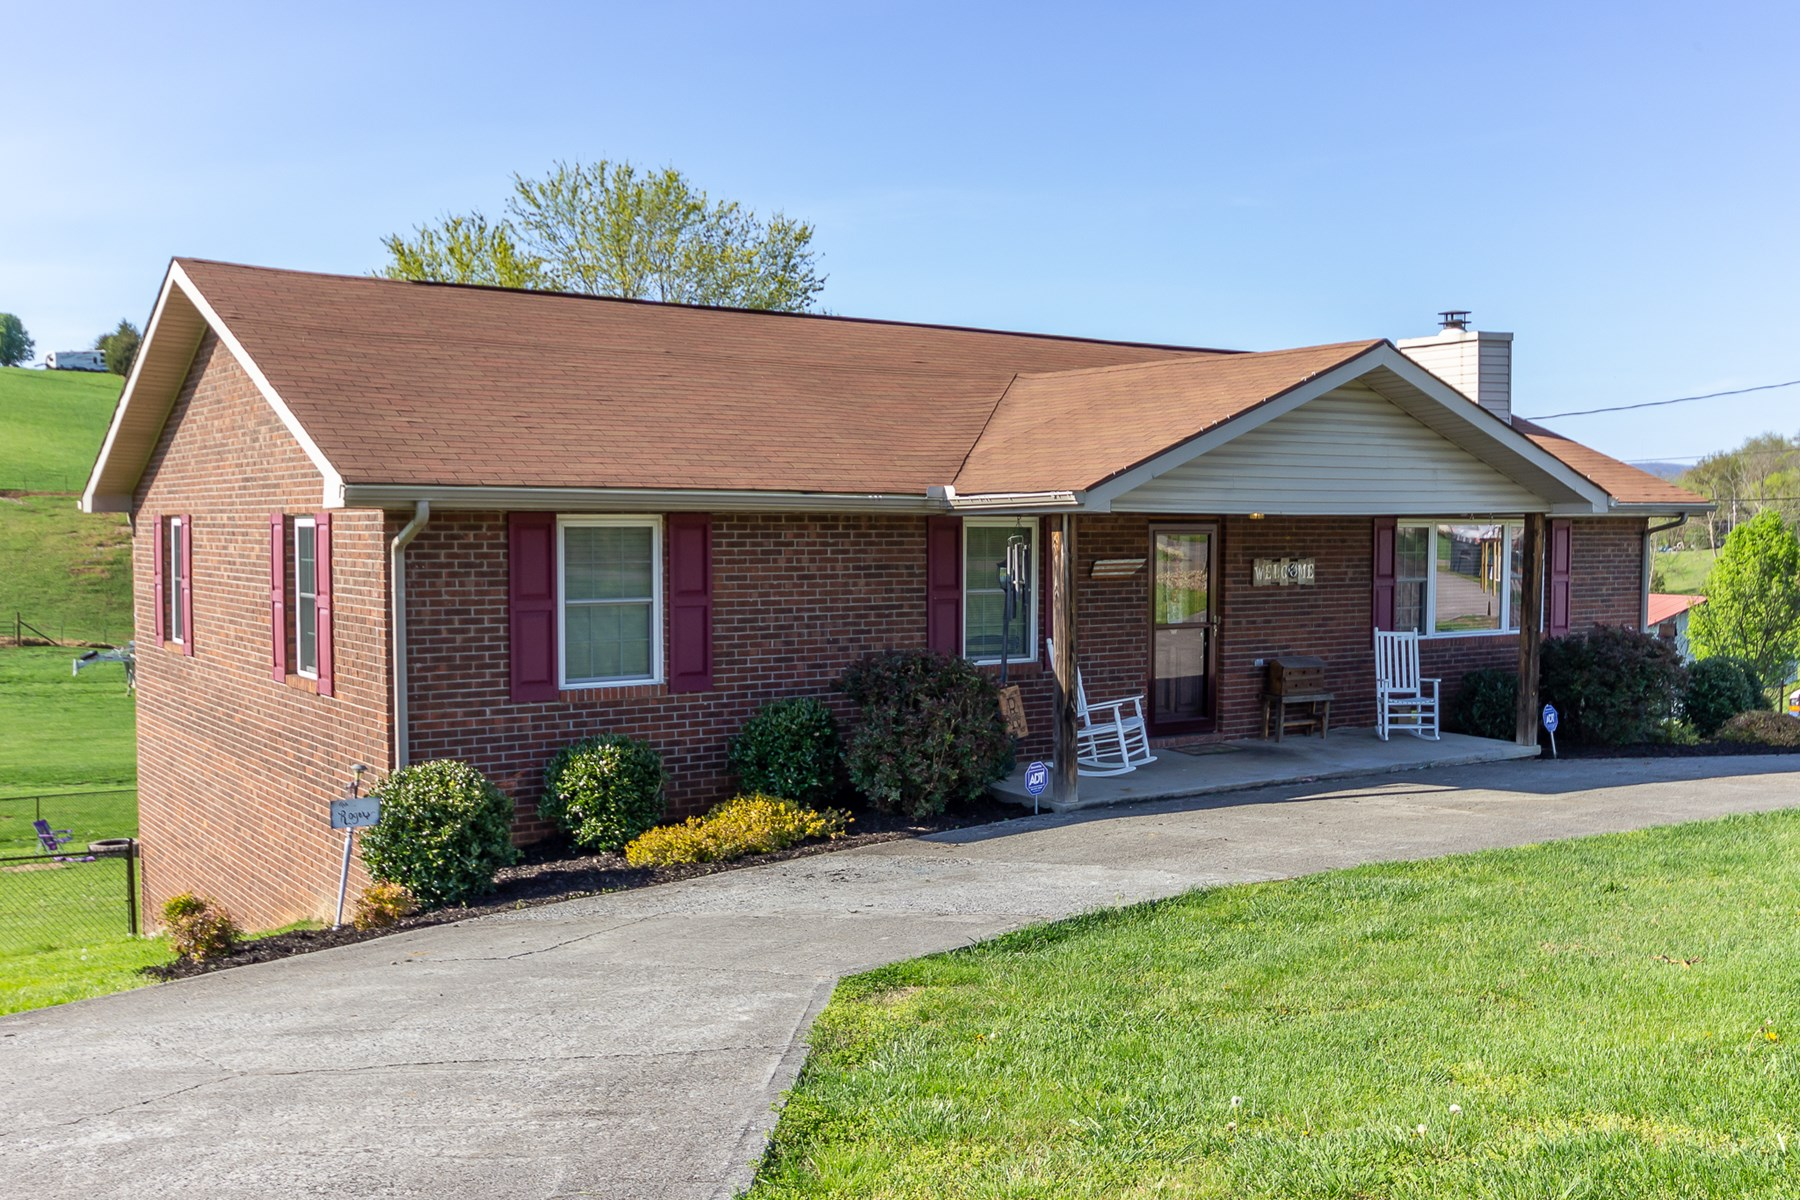 3 BR Brick Home For Sale in Morristown, TN